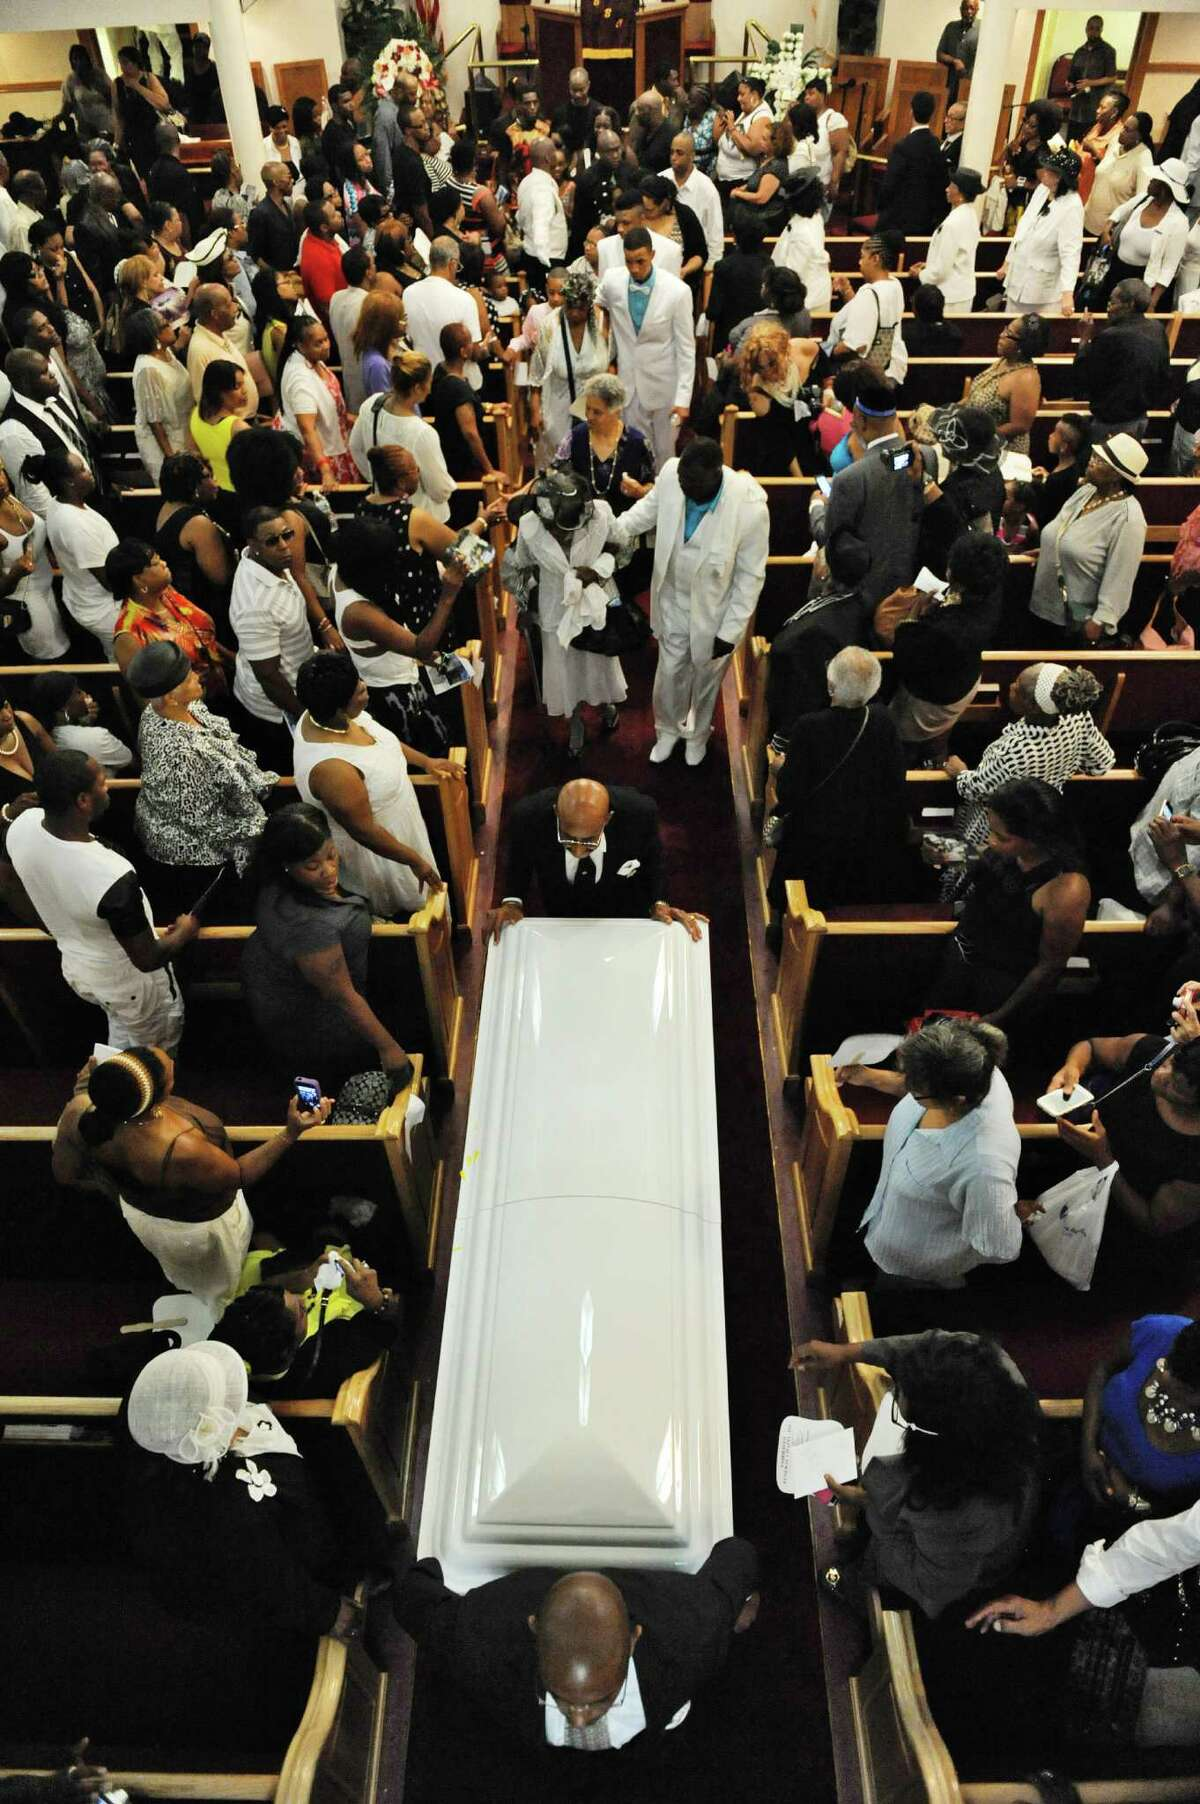 FILE - In this July 23, 2014 file photo, the casket of Eric Garner is taken from Beth Baptist Church in the Brooklyn borough of New York. Two years after the police chokehold death of Garner made